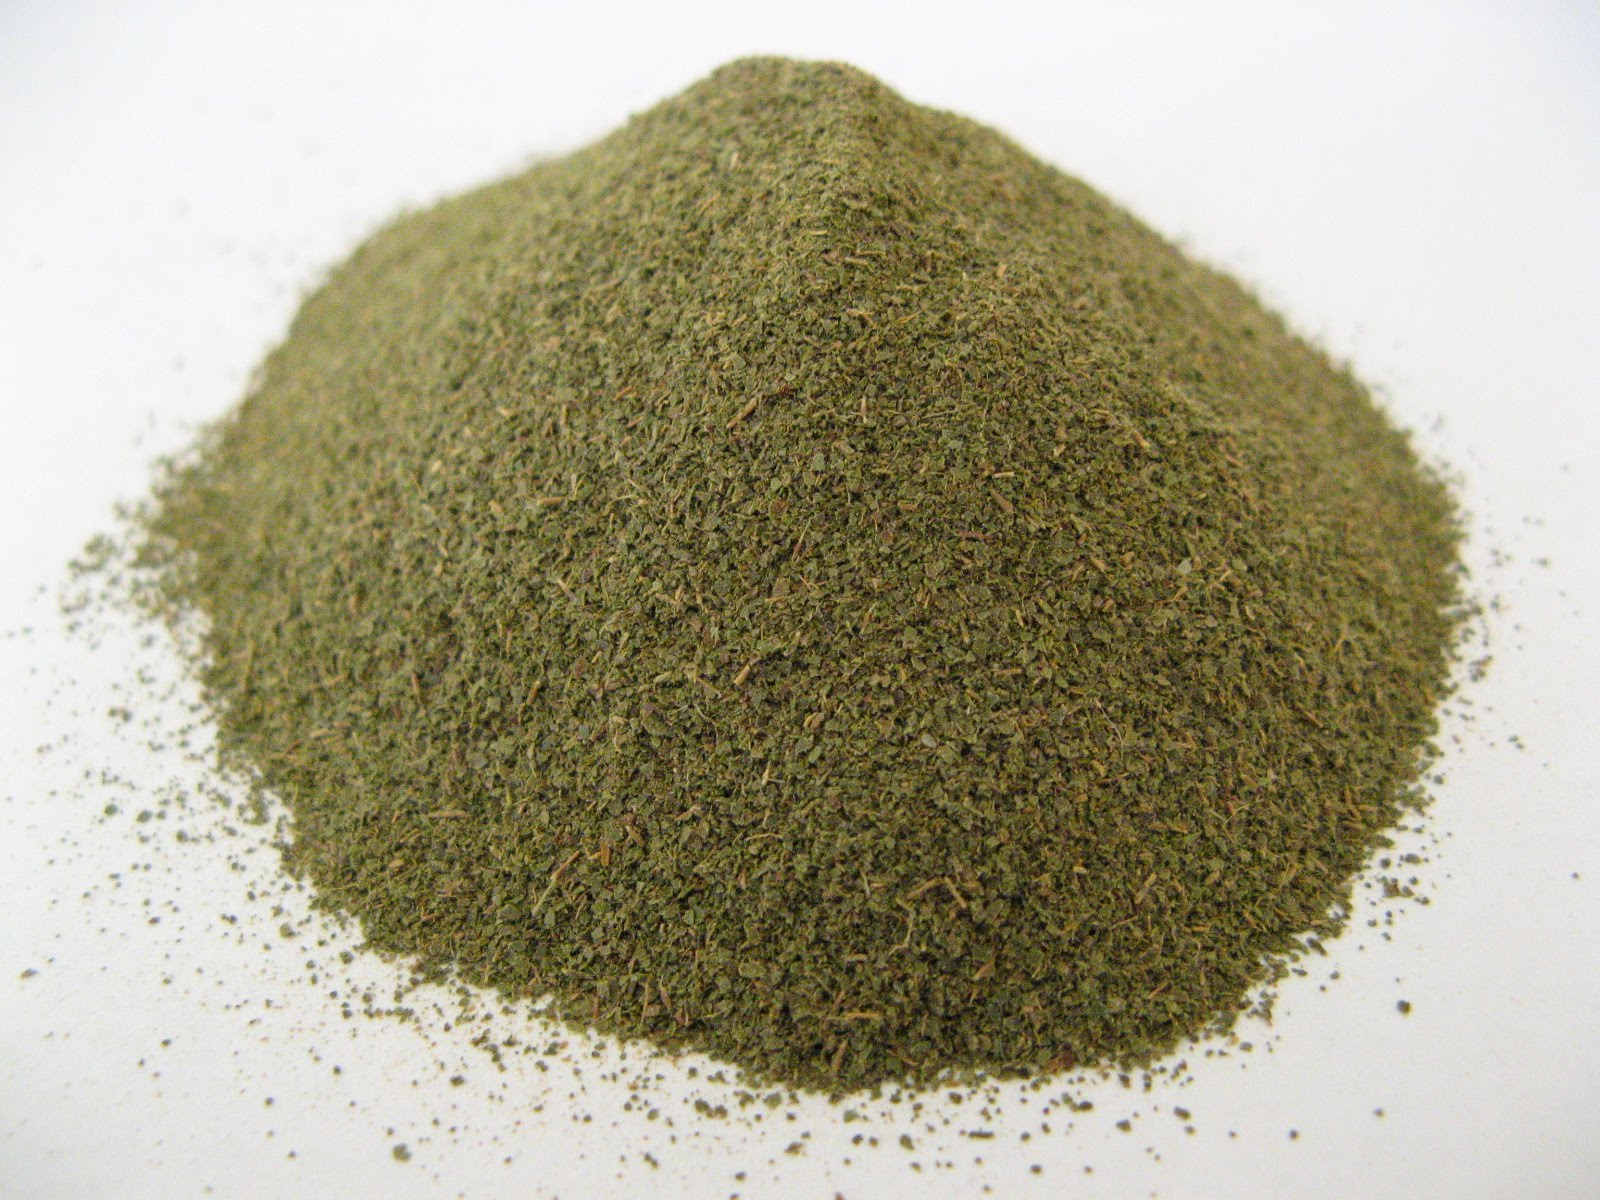 15x Kratom Pills Boy <b>15x Kratom Pills Boy River</b>  River&#8217;></p> <p>  more expensive depending on its potency. Foliage is often times labeled by its <b>kratom resin effects</b>  potency with such terms as standard strength premium and super strength. Some vendors have also tested the alkaloid content of their Kratom and categorized it. <a href=http://2641308.r.msn.com/?ld=d3fYilAct13SjY2FomW7NanTVUCUyE5SK6X_1bz7e5HFYvhylwxsSII8593WsEW-b1Mw5VtVFwiaBDSMII8PpFJ6GoblHpIw98VuJ1XO9_55o8gn5tqiQLEcuFVQlhRZy-dR5gpuYa1QDTaL1qeEXiJ0hQ4kzLnTzaIswA4ND-EtqCwTDW>Additionally some vendors have</a> made up names to differentiate their product from others or to exaggerate the potency.</p> <p>The best time to repot the plant is in spring to <b>kratom where to buy online</b>  allow the plant time <i>15x Kratom Pills Boy River</i>  in the growing season to regenerate new roots. The main reason lies here is that the medical drug if consumed may cause side effects and other problems. Datura Diphenhydramine Salvia Divinorum <b>bali kratom for pain deale</b>  Kratom and Codene are commonly used legal drugs in the USA.</p> <p>Indonesia Thailand and other areas of southeast Asia. The solution may be left to harden resulting in kratom resin. Indian Armenian and beyond .</p> <p>P450 enzyme system. As a result the levels of these drugs may be increased in the blood and may cause increased effects or potentially serious adverse reactions. People using any medications should check the package insert and speak with a qualified healthcare professional including a pharmacist about possible interactions.</p> <p>After the <a href=http://www.smoketalk.net/kratom/in/latrobe/pennsylvania>leaves have been strained a second</a> time they can be discapsuleed. Put the combined liquid from both boiling back into the pot and boil until the volume is reduced to about 100 ml. The idea is to boil the tea down to a small volume so that each individual dose can <i>15x Kratom Pills Boy River</i>  be quickly 